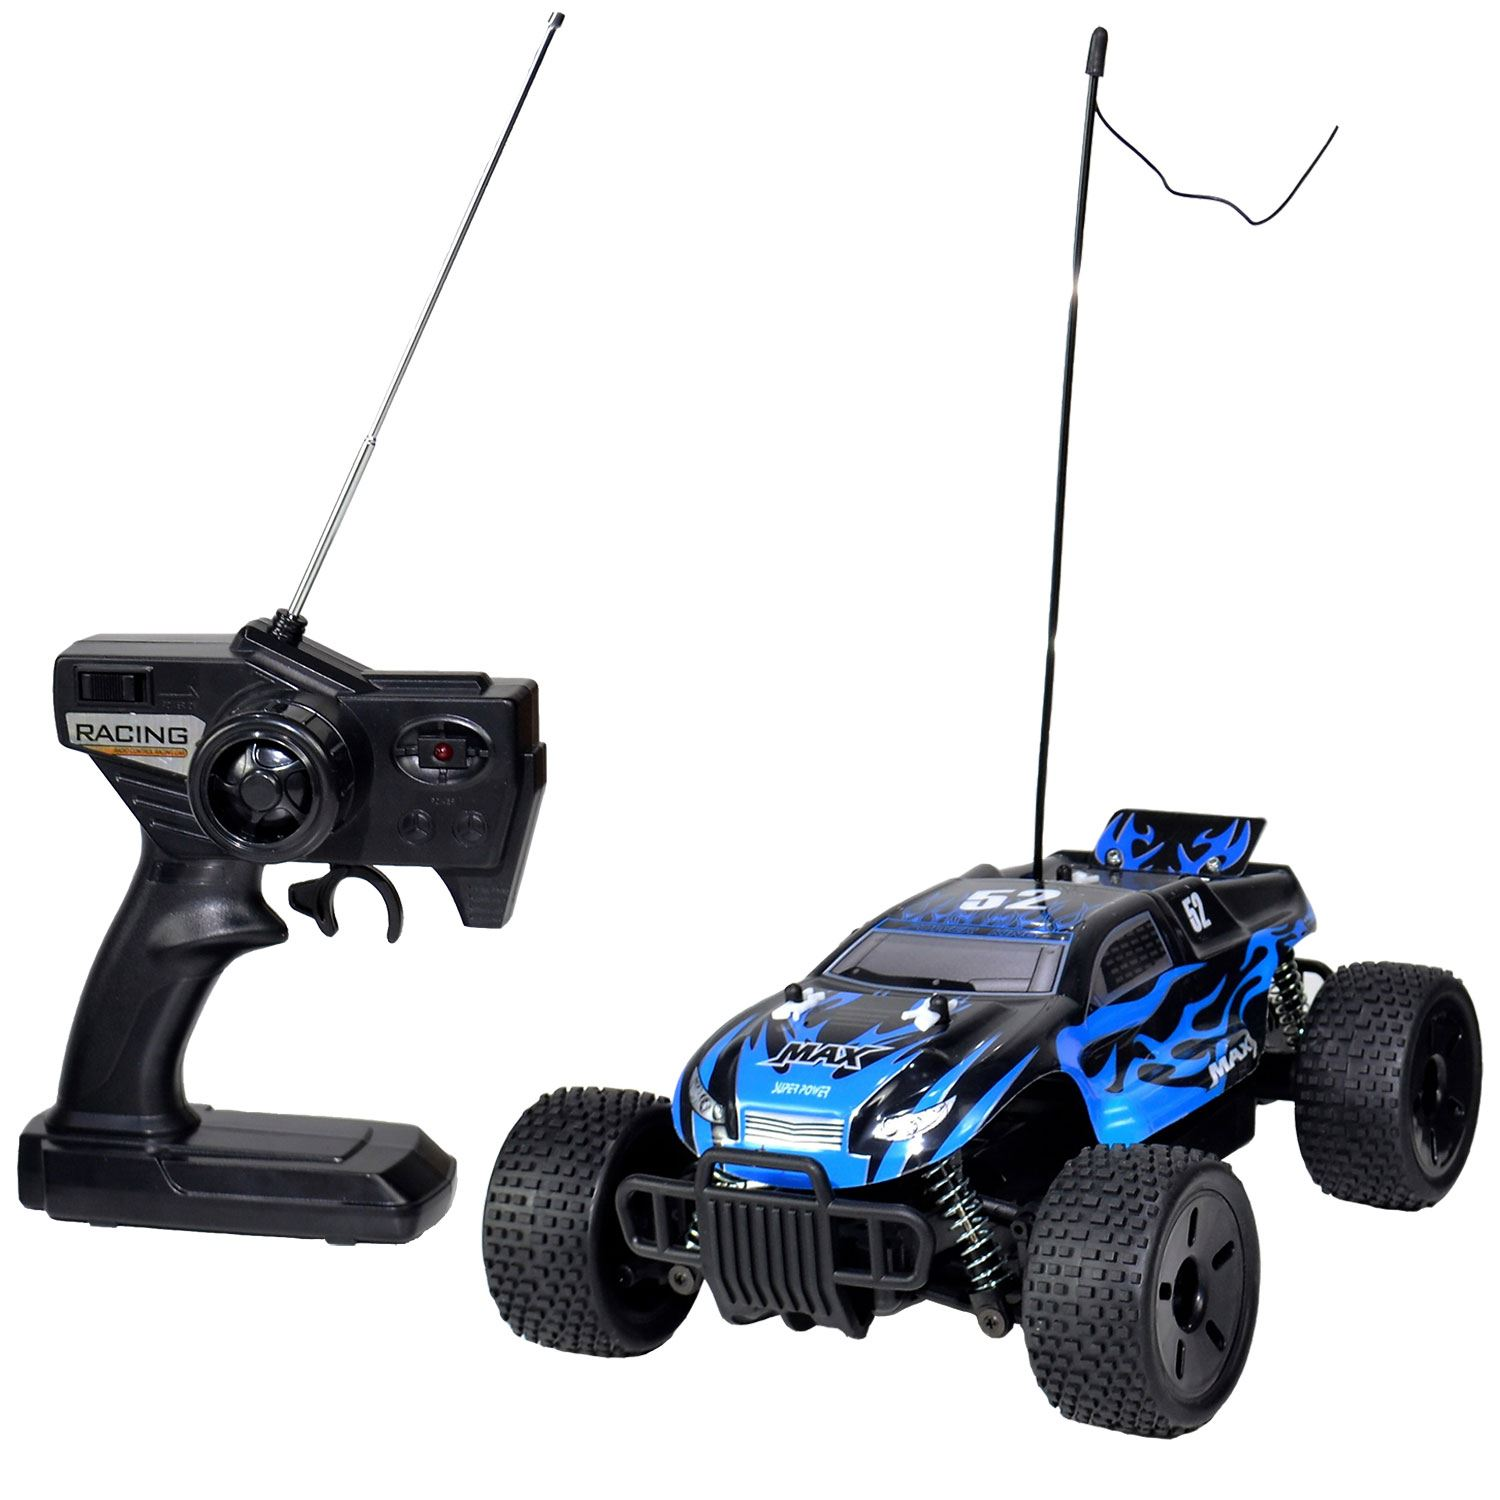 remote control off road buggy with 152336811039 on Sears Lobo Ii in addition 152336811039 together with WLtoys A959 B 118 4WD Buggy Off Road RC Car 70kmh P 1044138 furthermore 511228995174188805 as well Radio Control Buggy Shootout 18 Scale 4wd Brushless 24ghz Rtr 348 P.